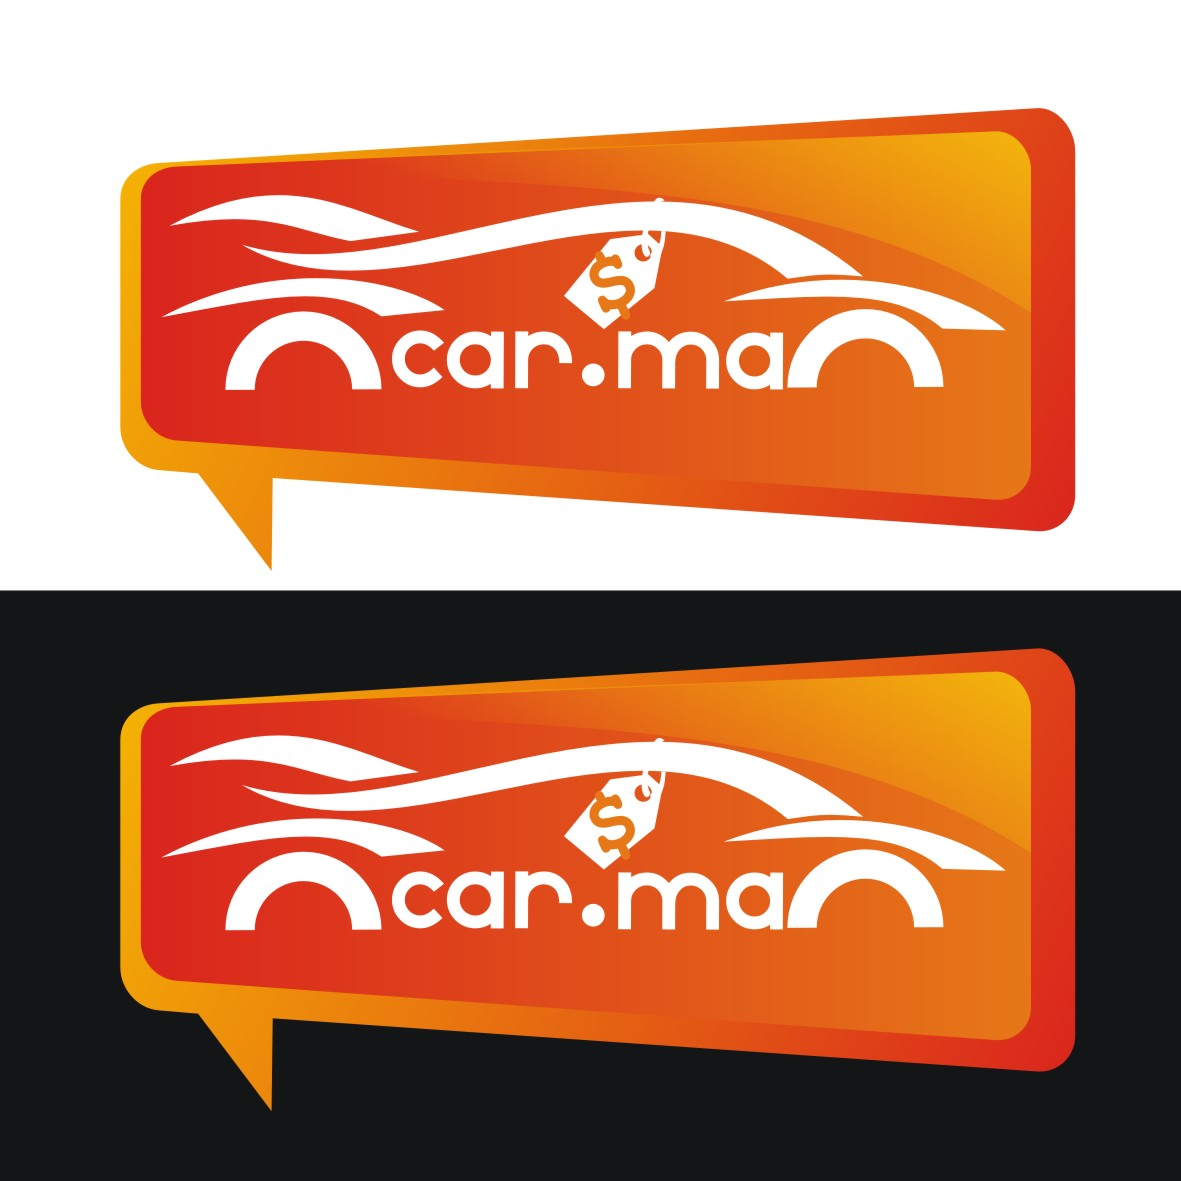 Logo Design by arteo_design - Entry No. 201 in the Logo Design Contest New Logo Design for car.ma.